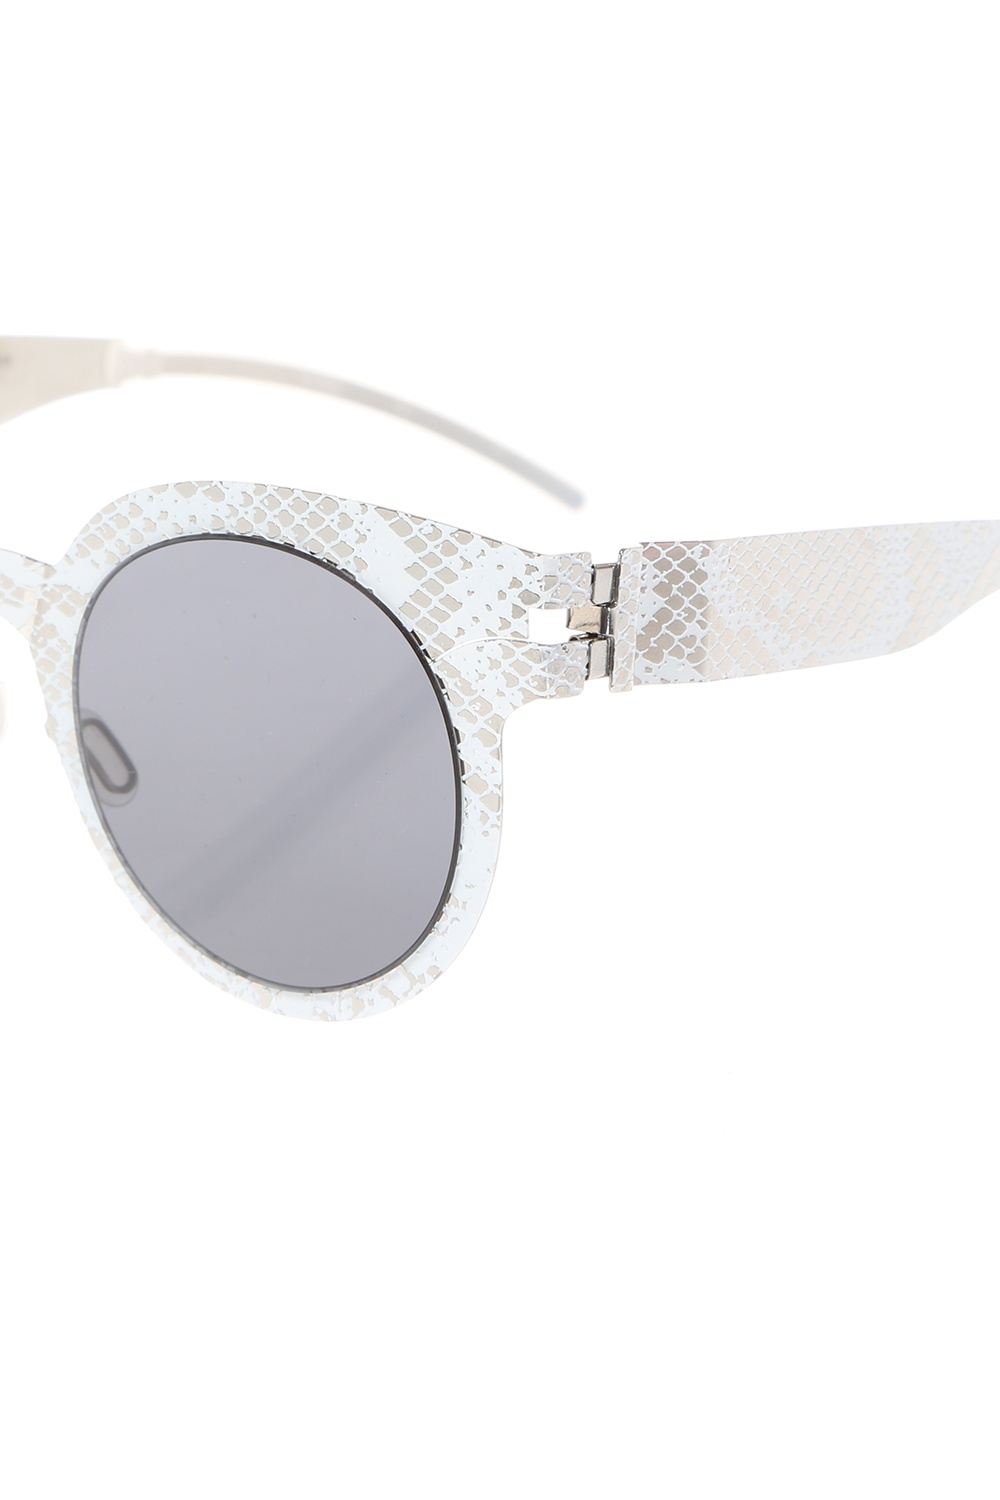 Mykita Patterned sunglasses